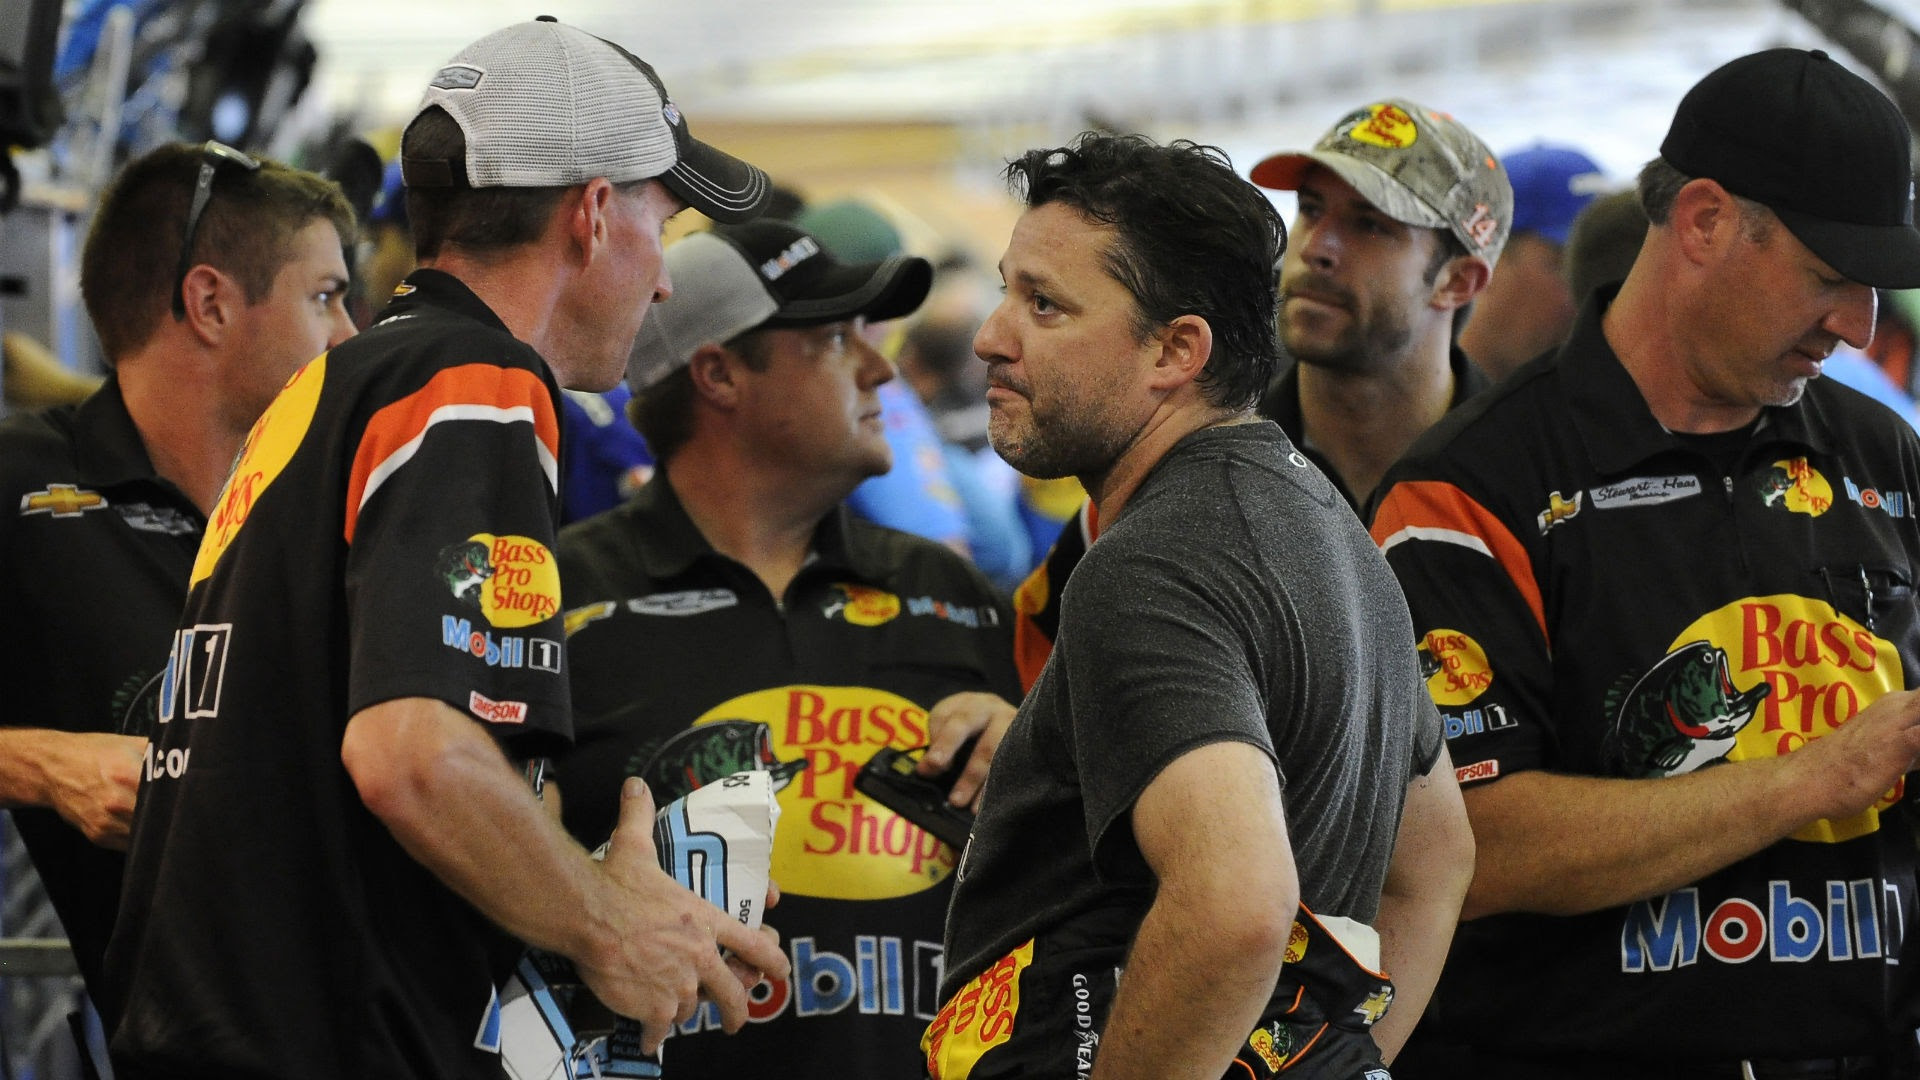 Tony Stewart Returns to Racing After Crash That Killed Fellow Driver